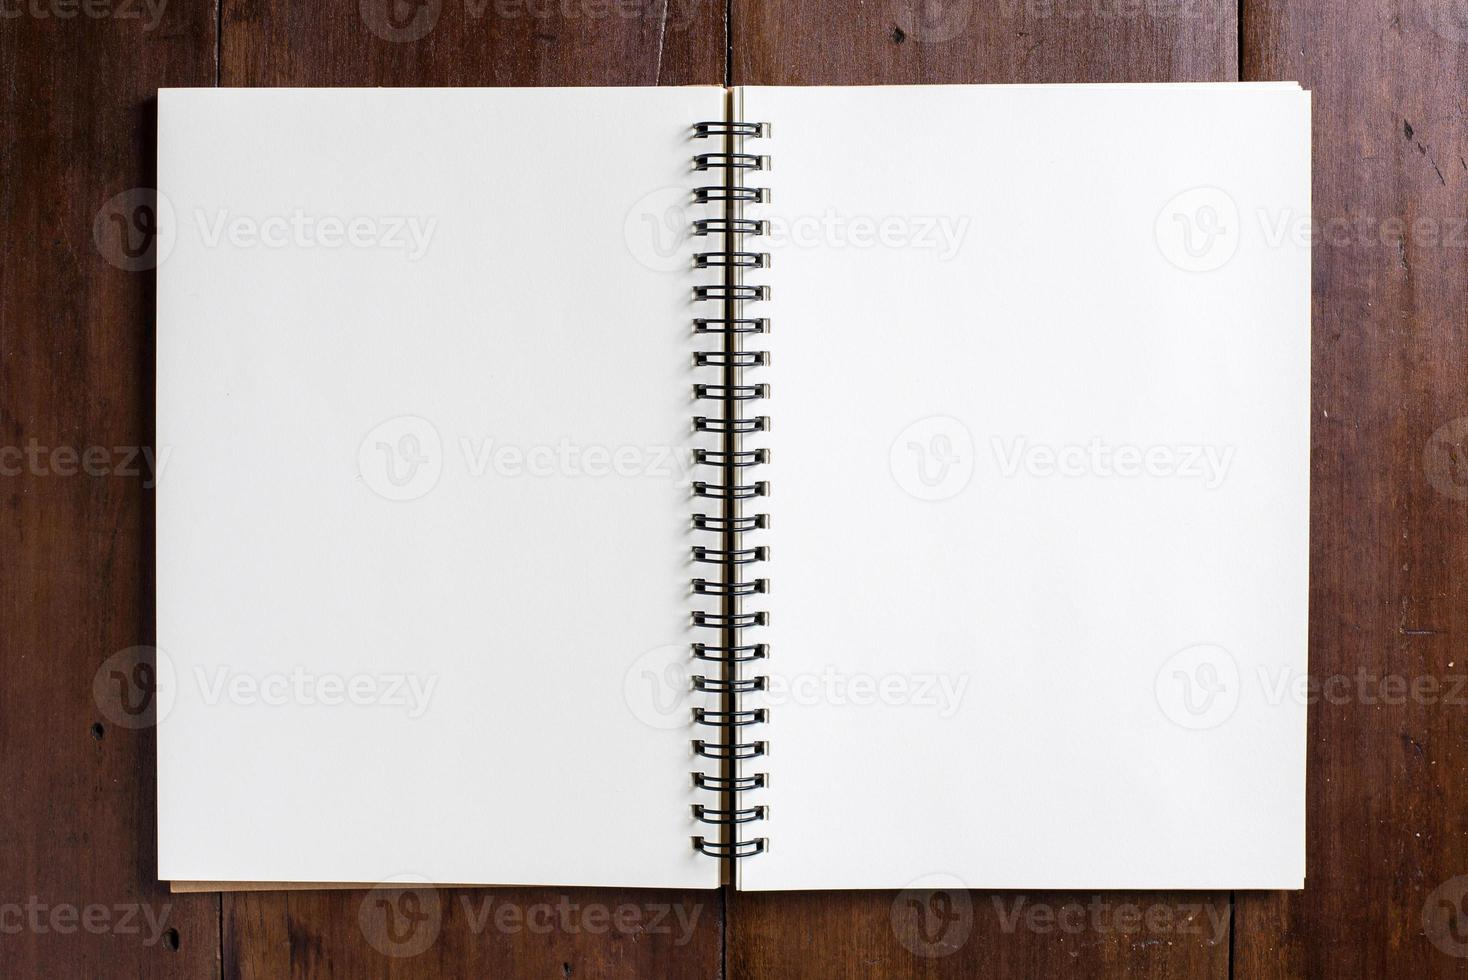 Recipe notebook on wooden background photo